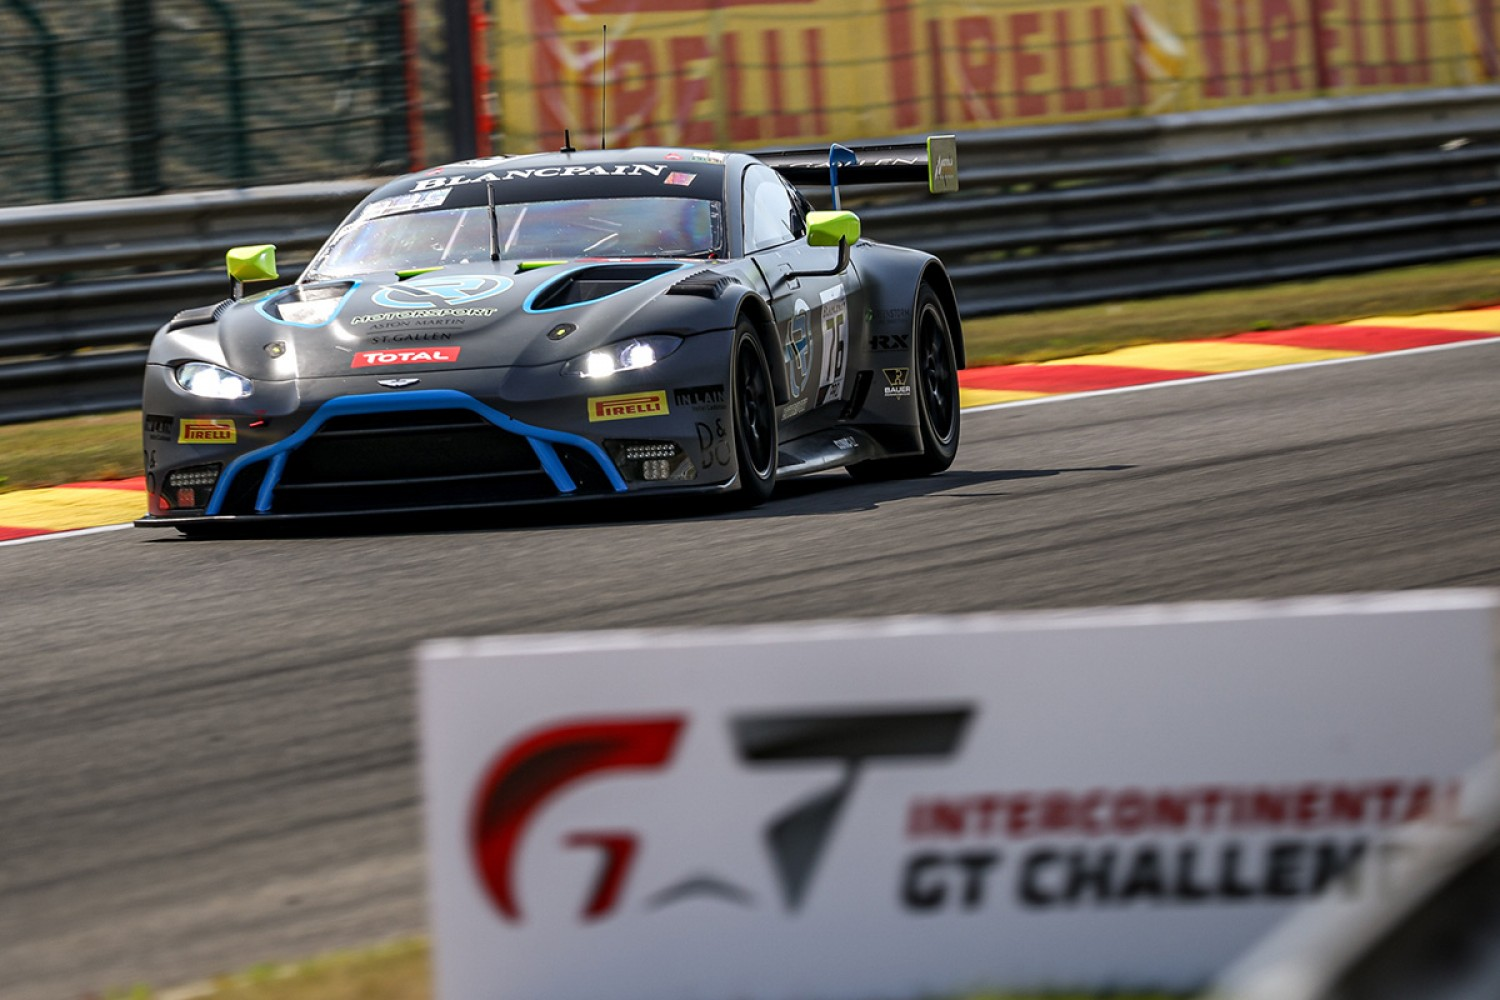 Aston Martin become eighth full-season Intercontinental GT Challenge manufacturer